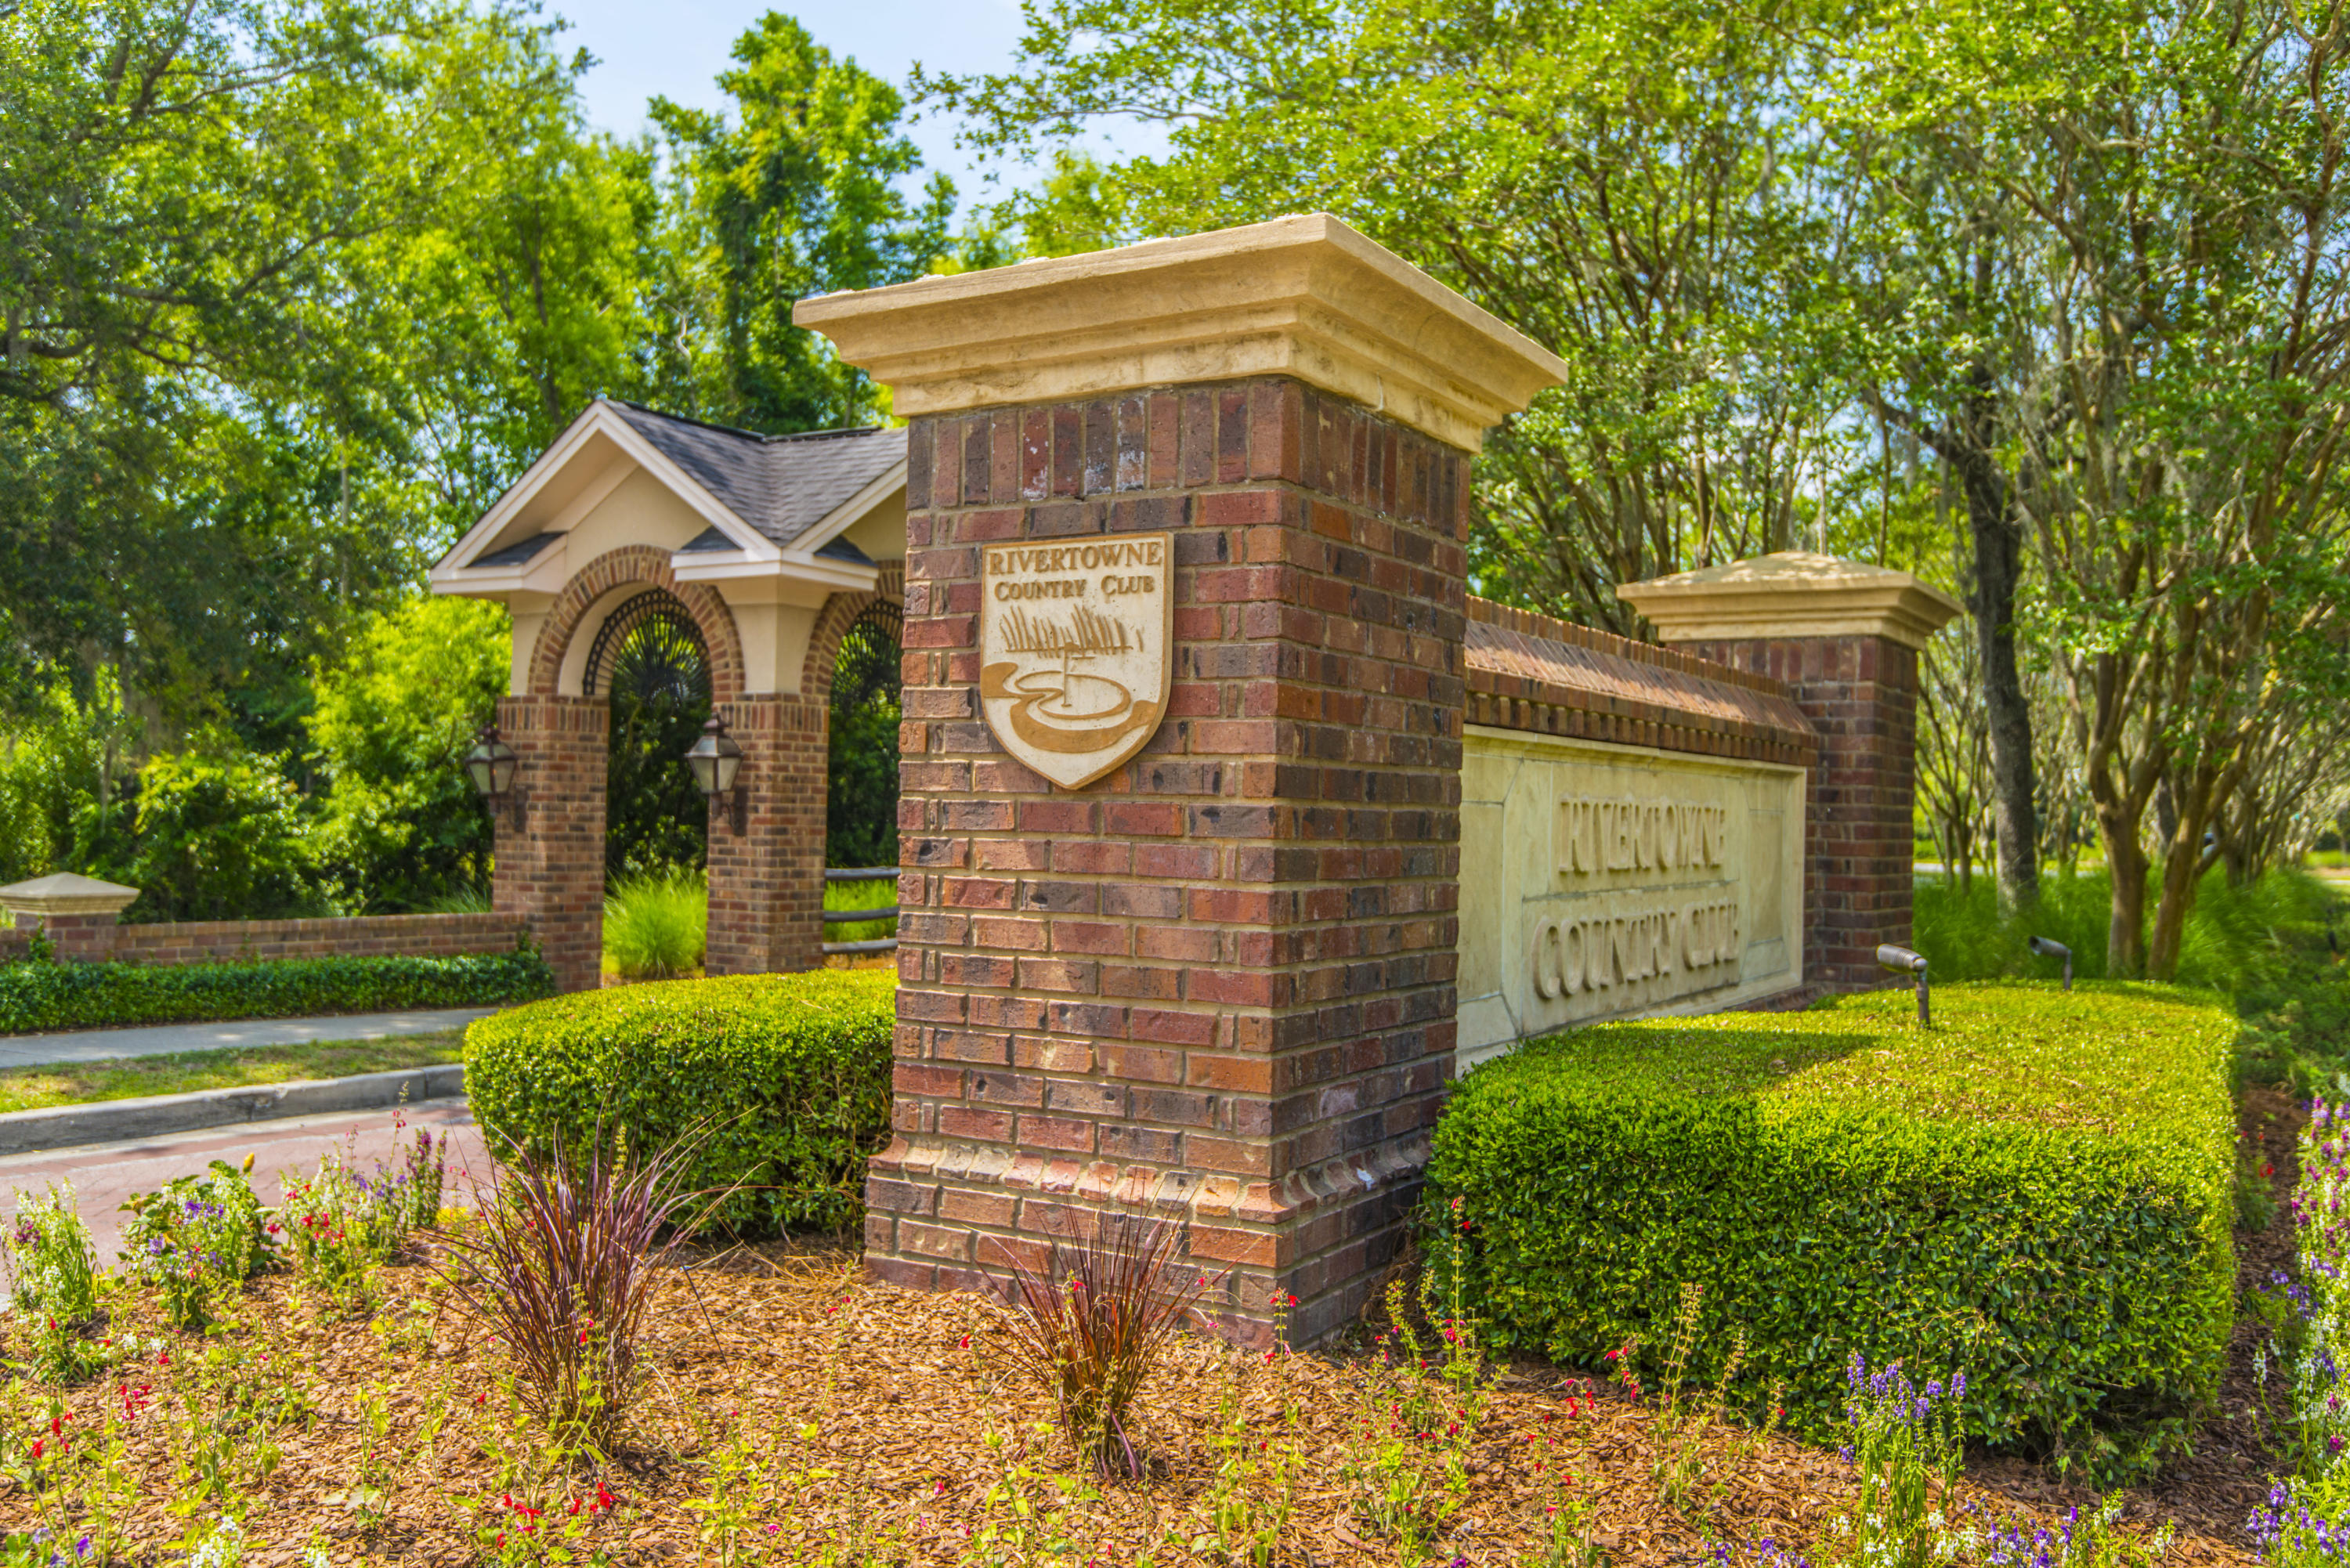 Rivertowne Country Club Homes For Sale - 2720 Sarazen, Mount Pleasant, SC - 28